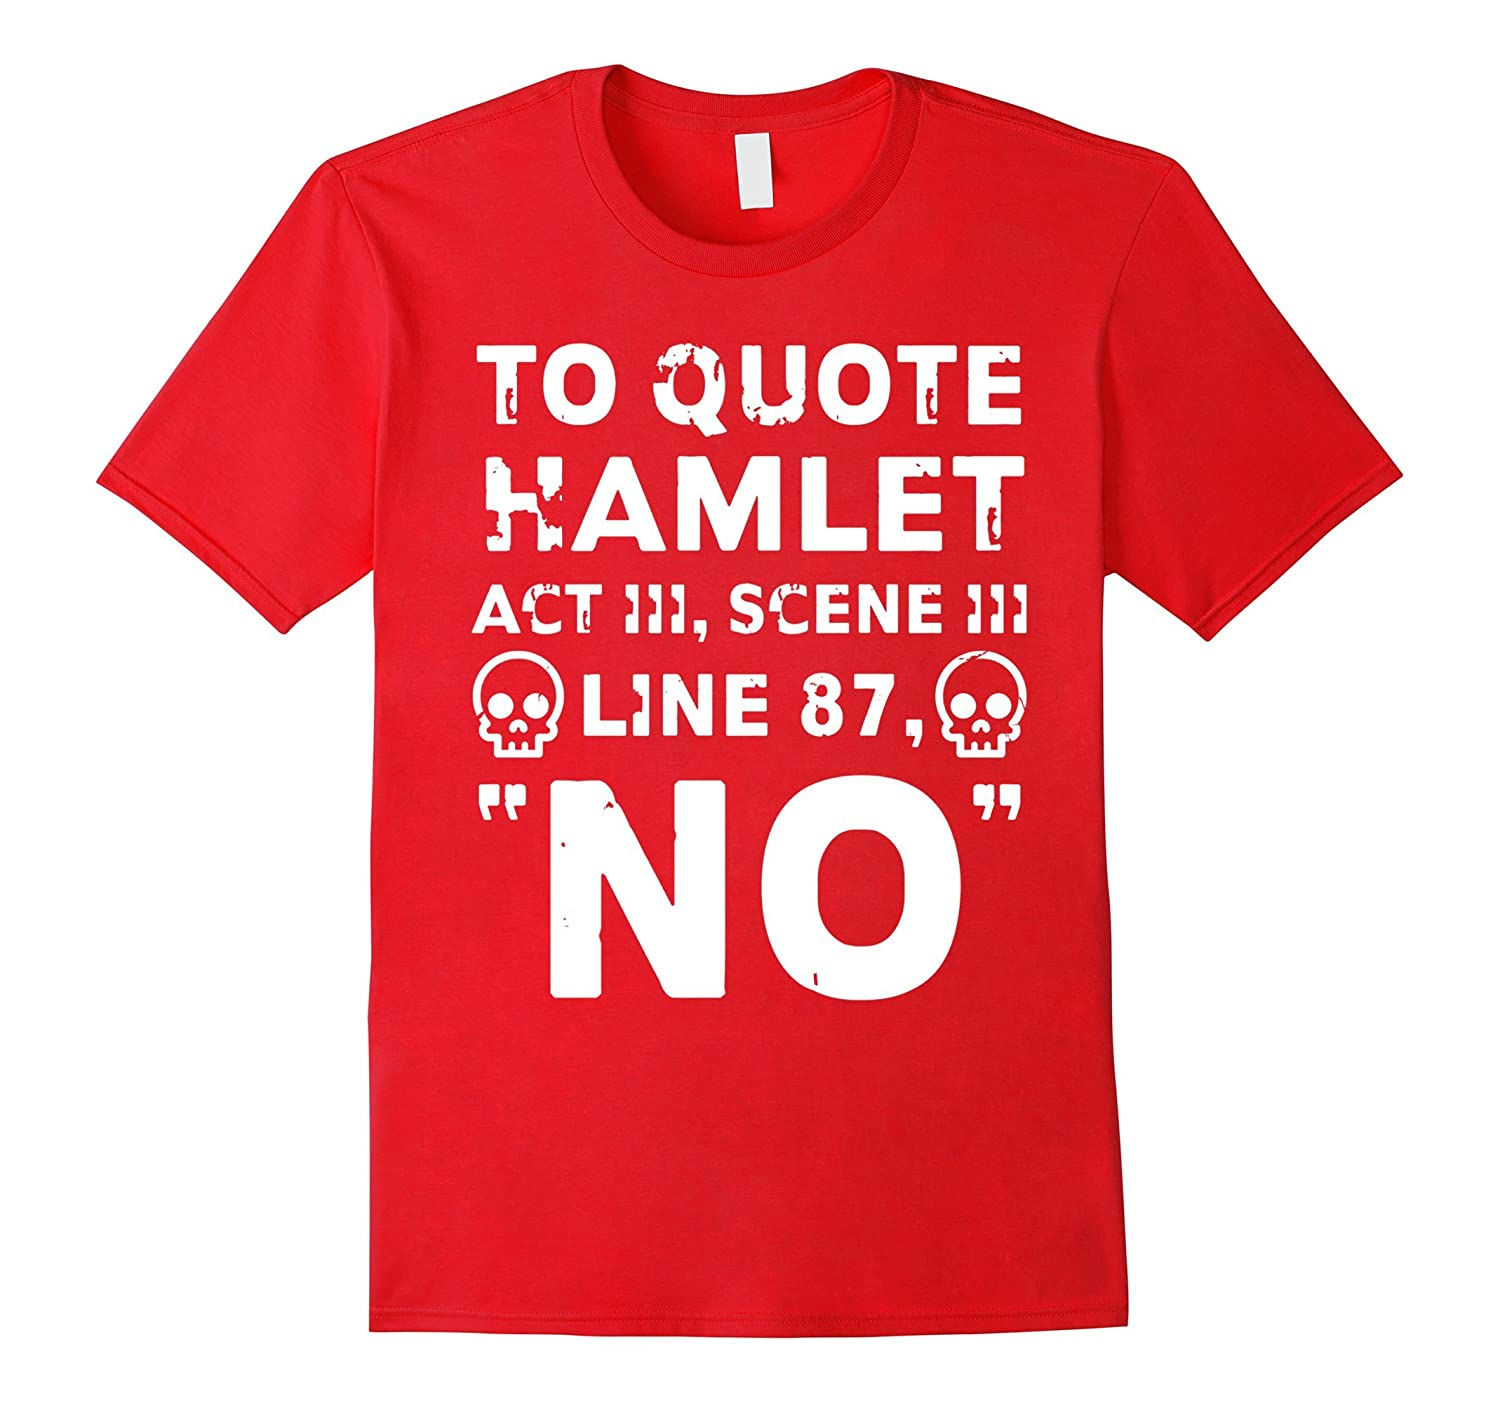 hamlet react 3 field 3 sections 87